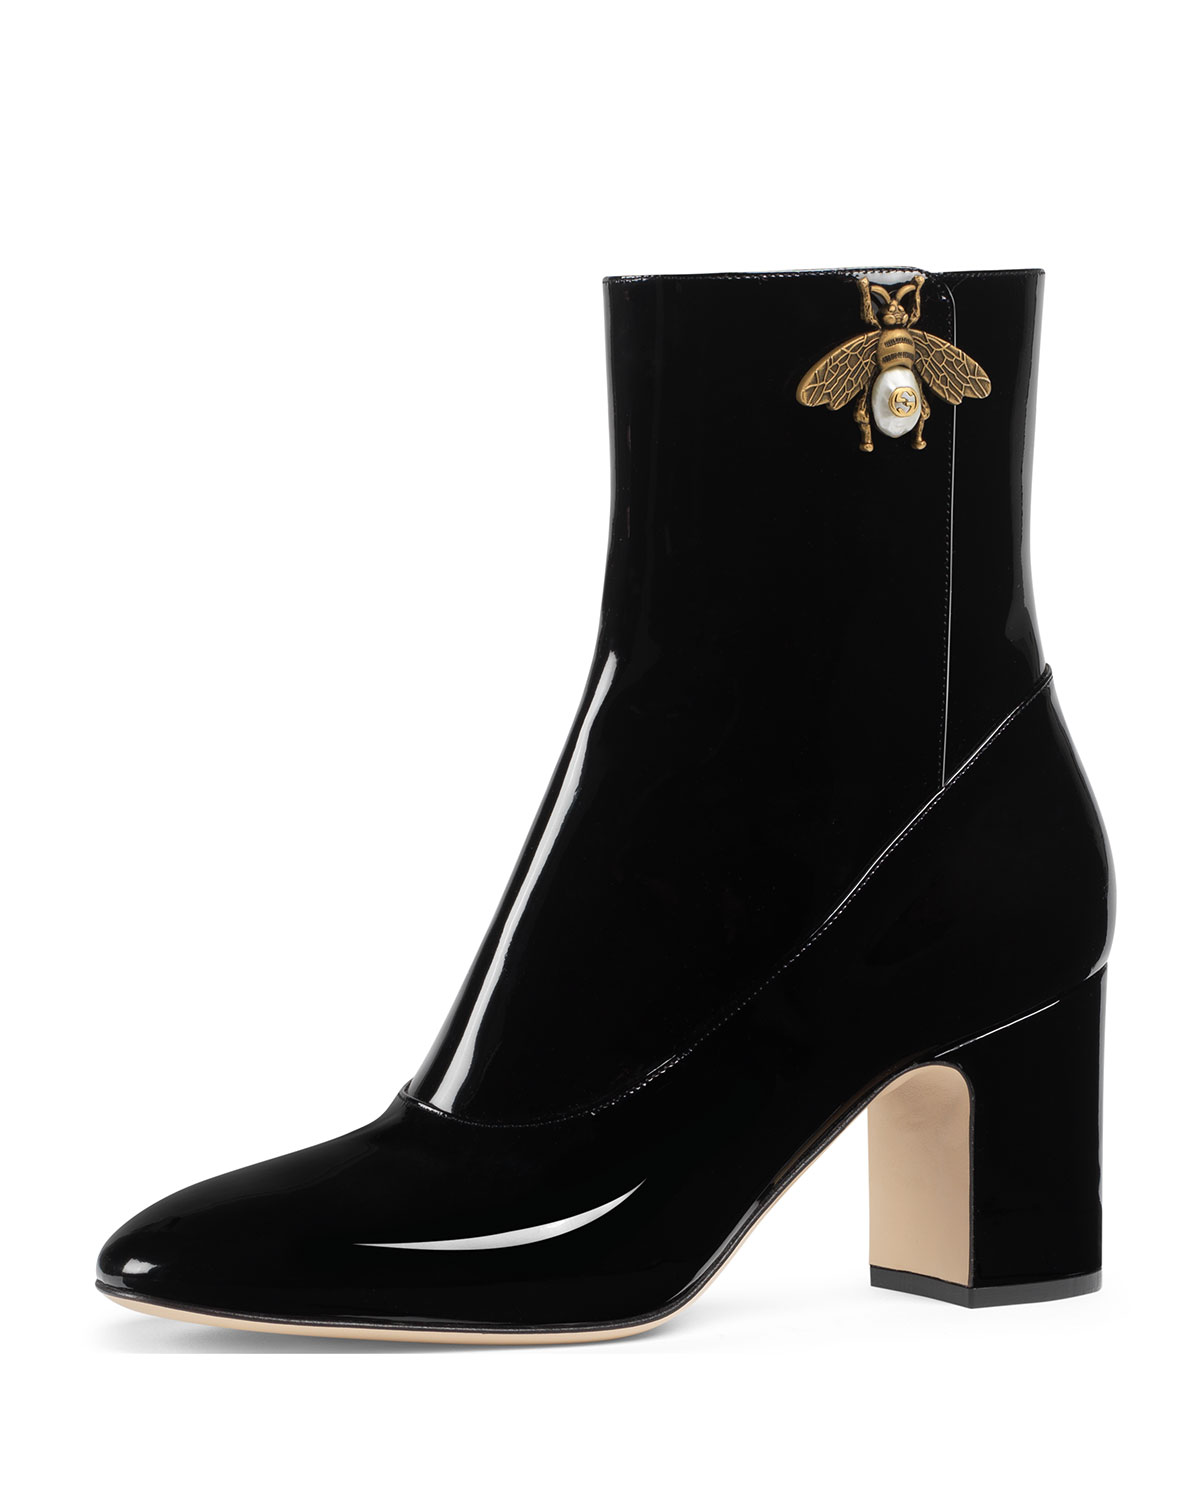 0fcbf7f5549 Gucci Lois Patent Leather Bee Bootie